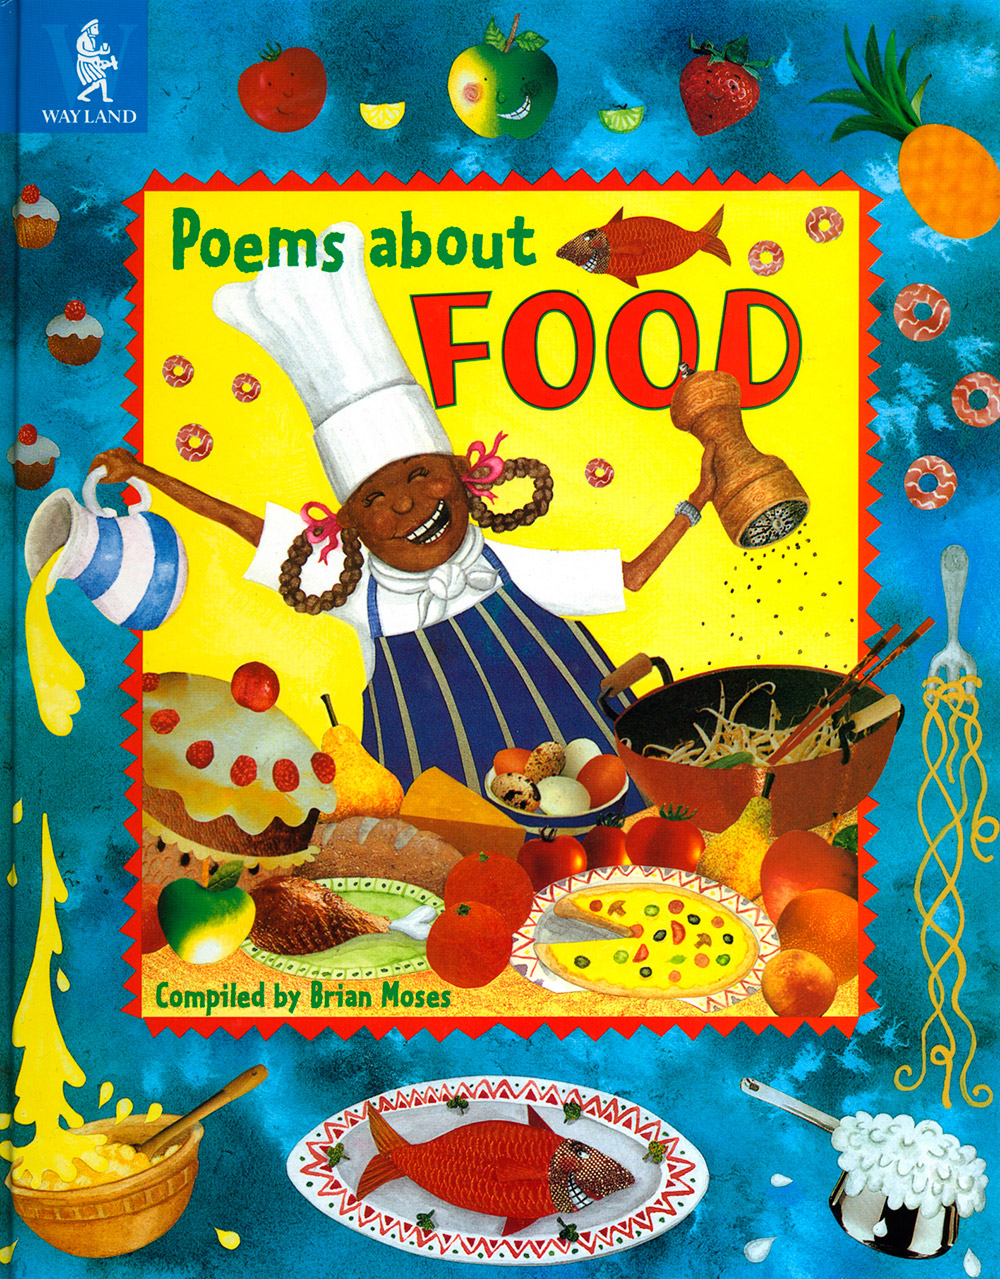 Poems about Food book cover design